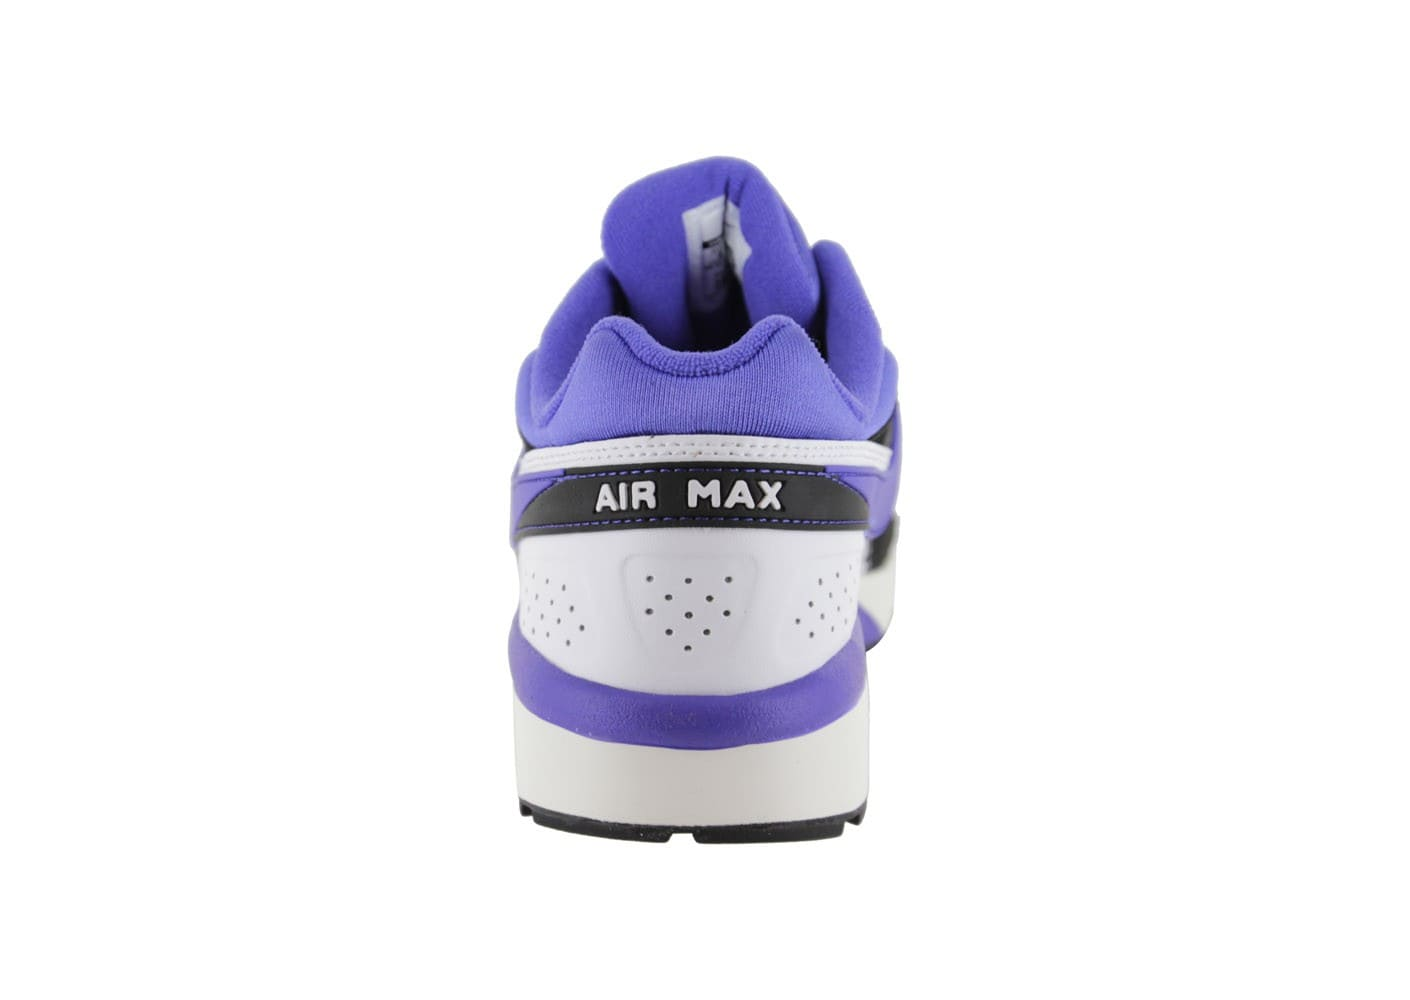 official photos 3f9af df32b ... Chaussures Nike Air Max Bw Classic Persian Violet vue arrière ...